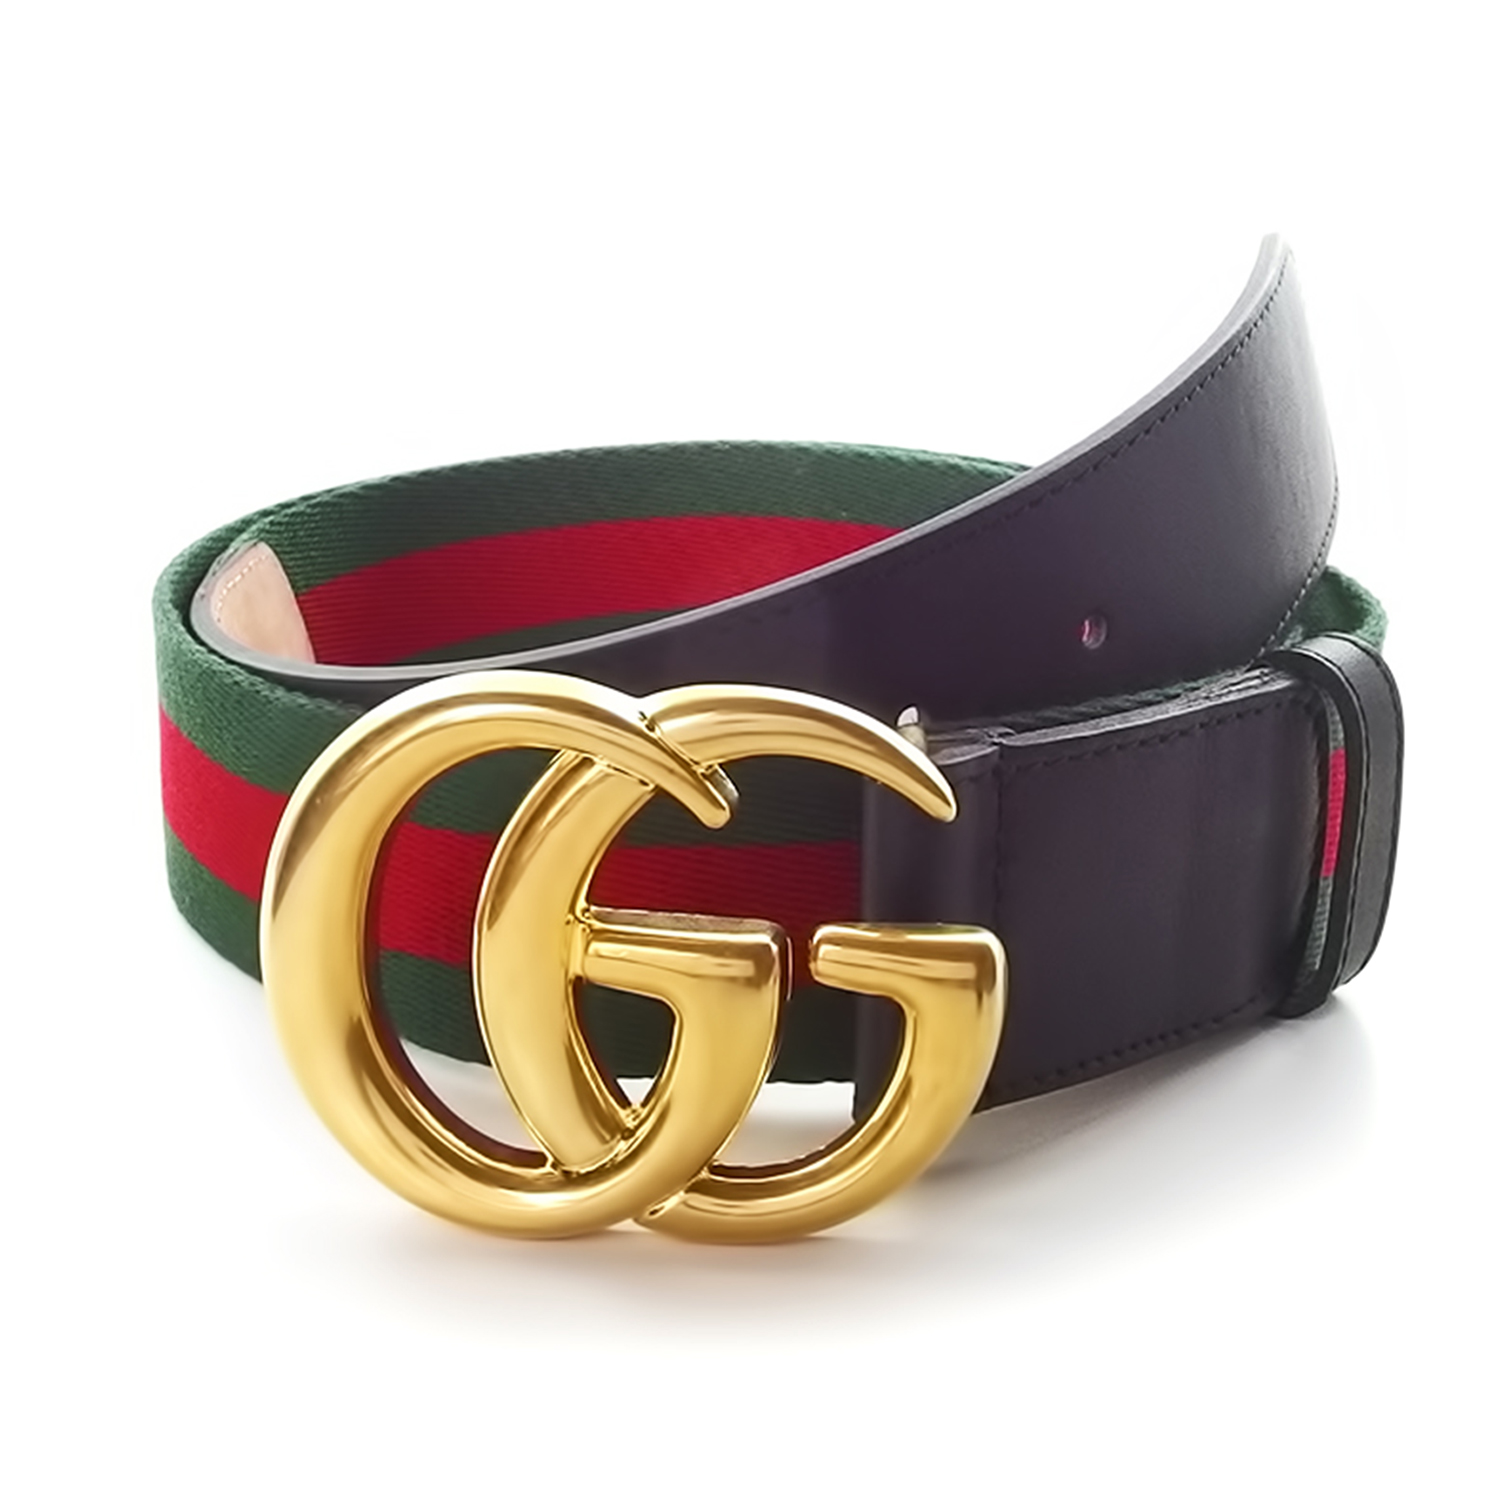 4d873ab8cd9 Gucci    Contoured GG Stripe Ribbon Creased Belt    Green + Red + Gold